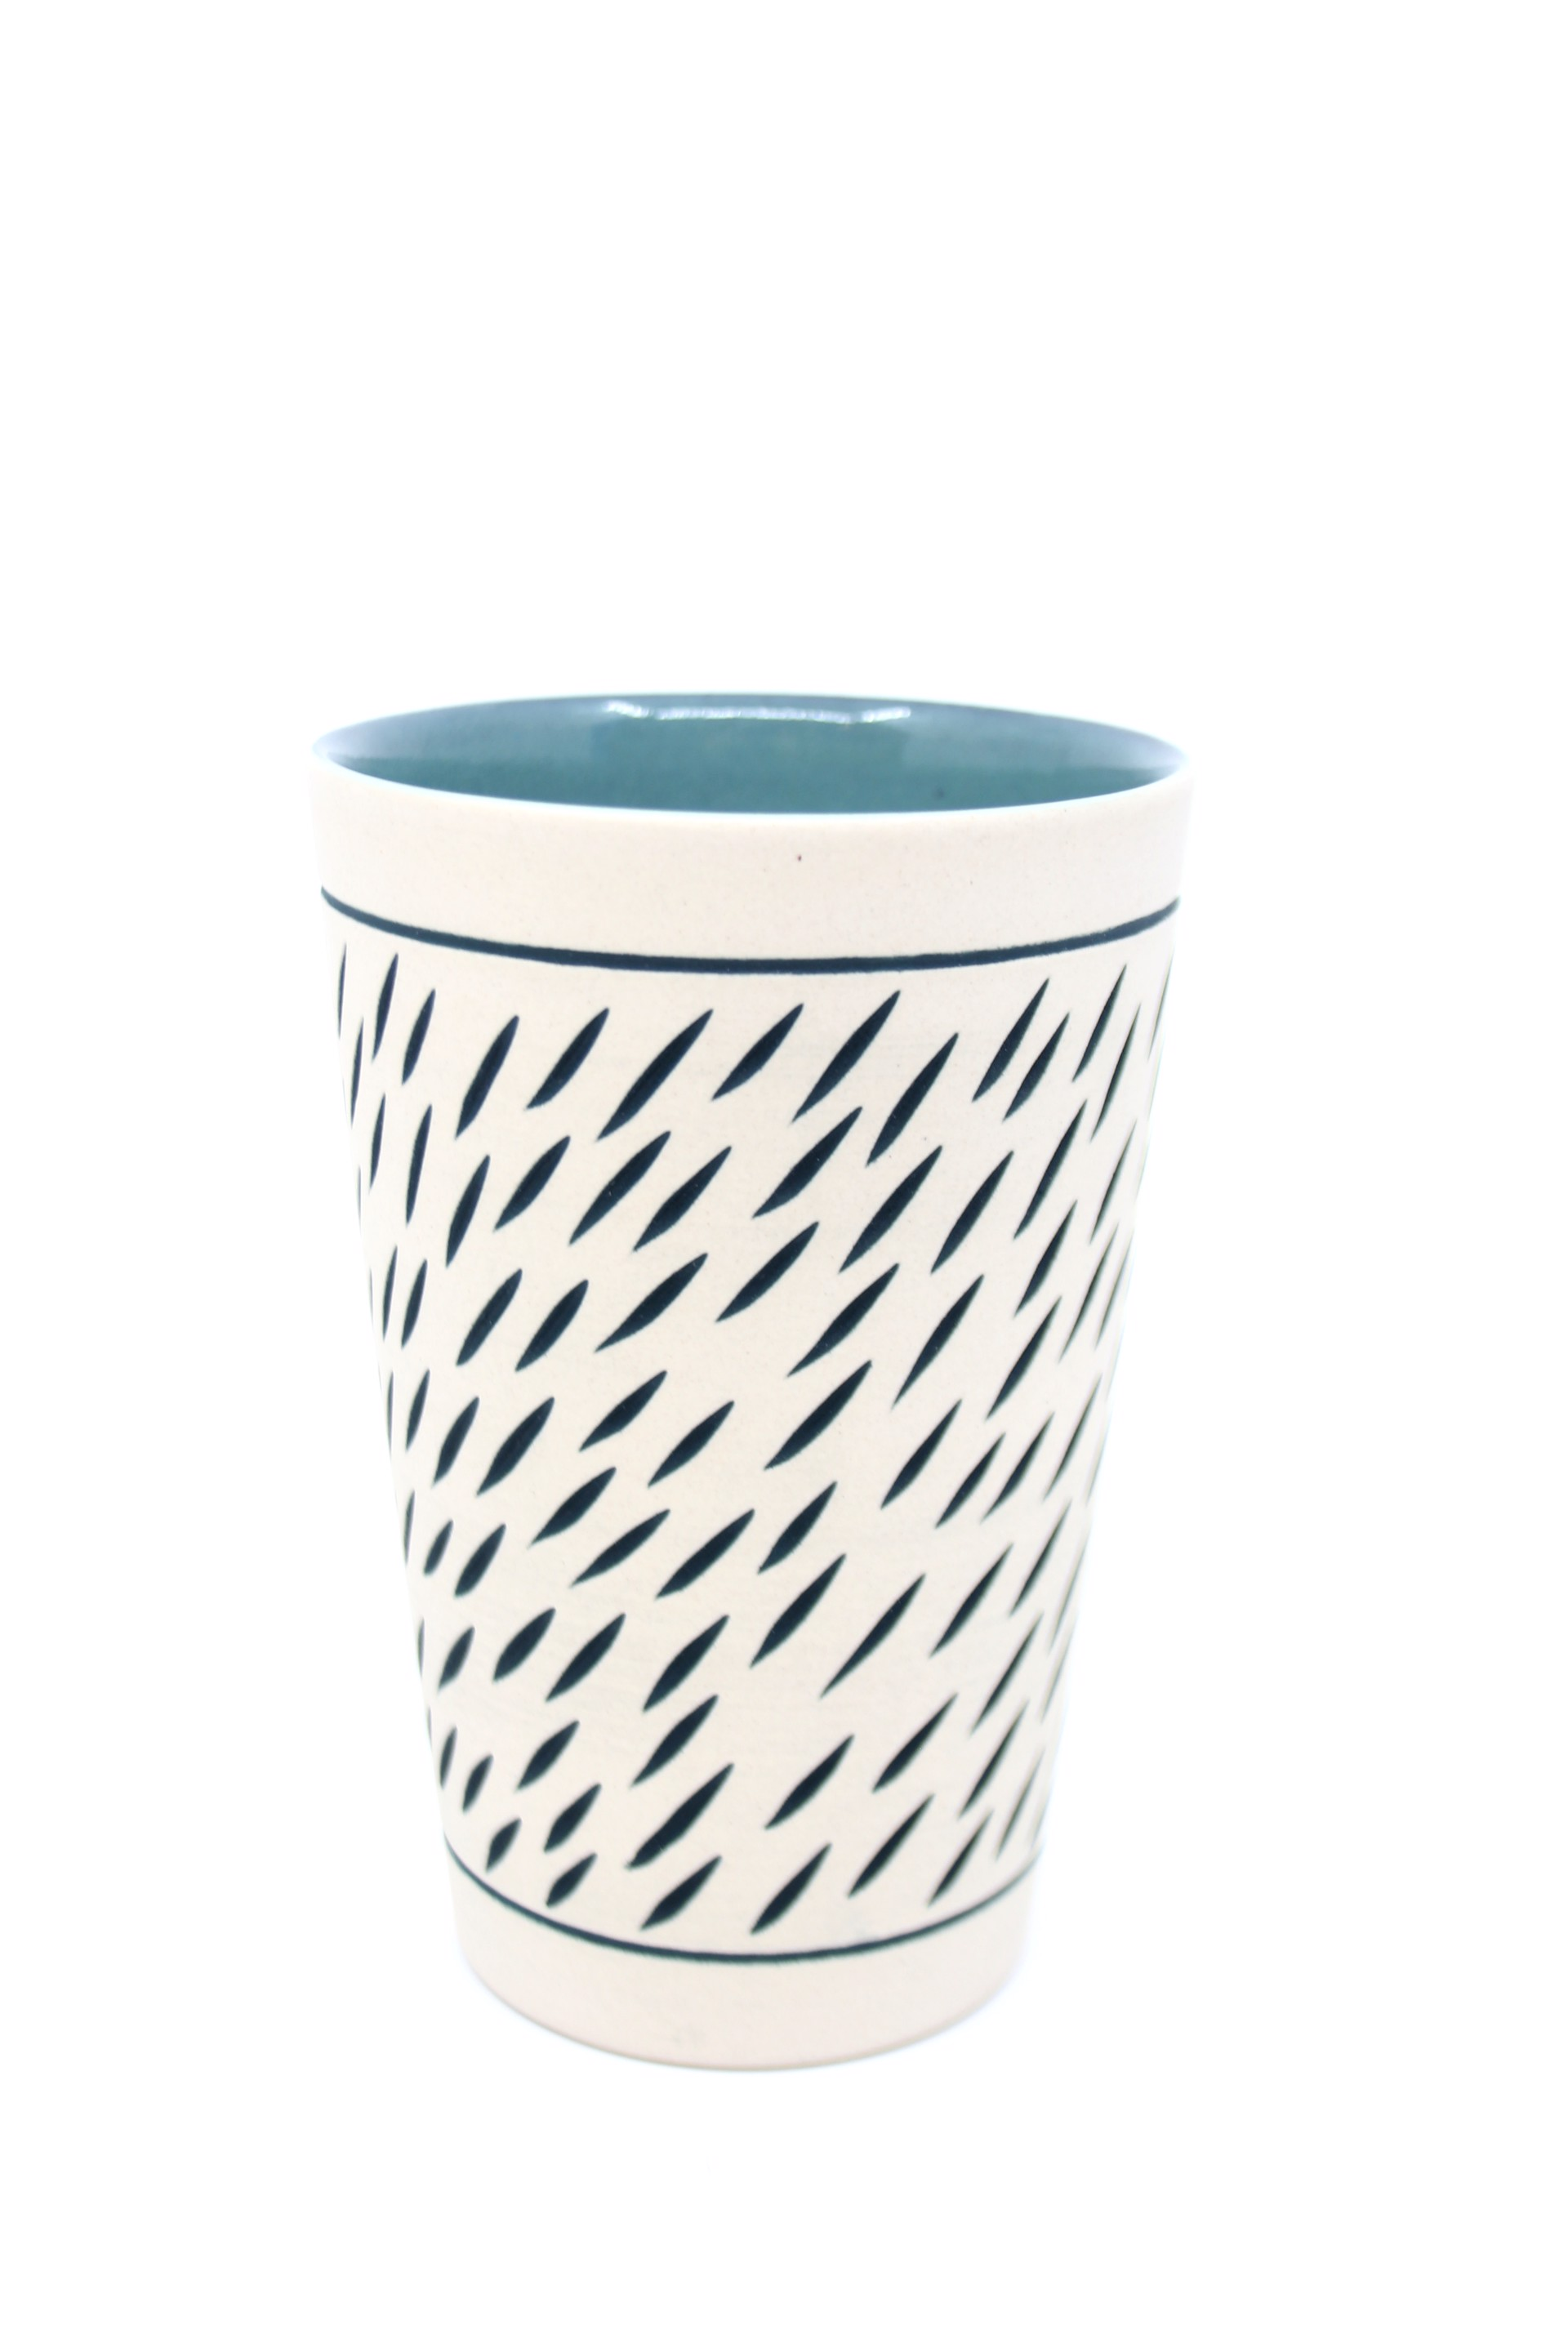 Turquoise/White Tall Cup by Chris Casey